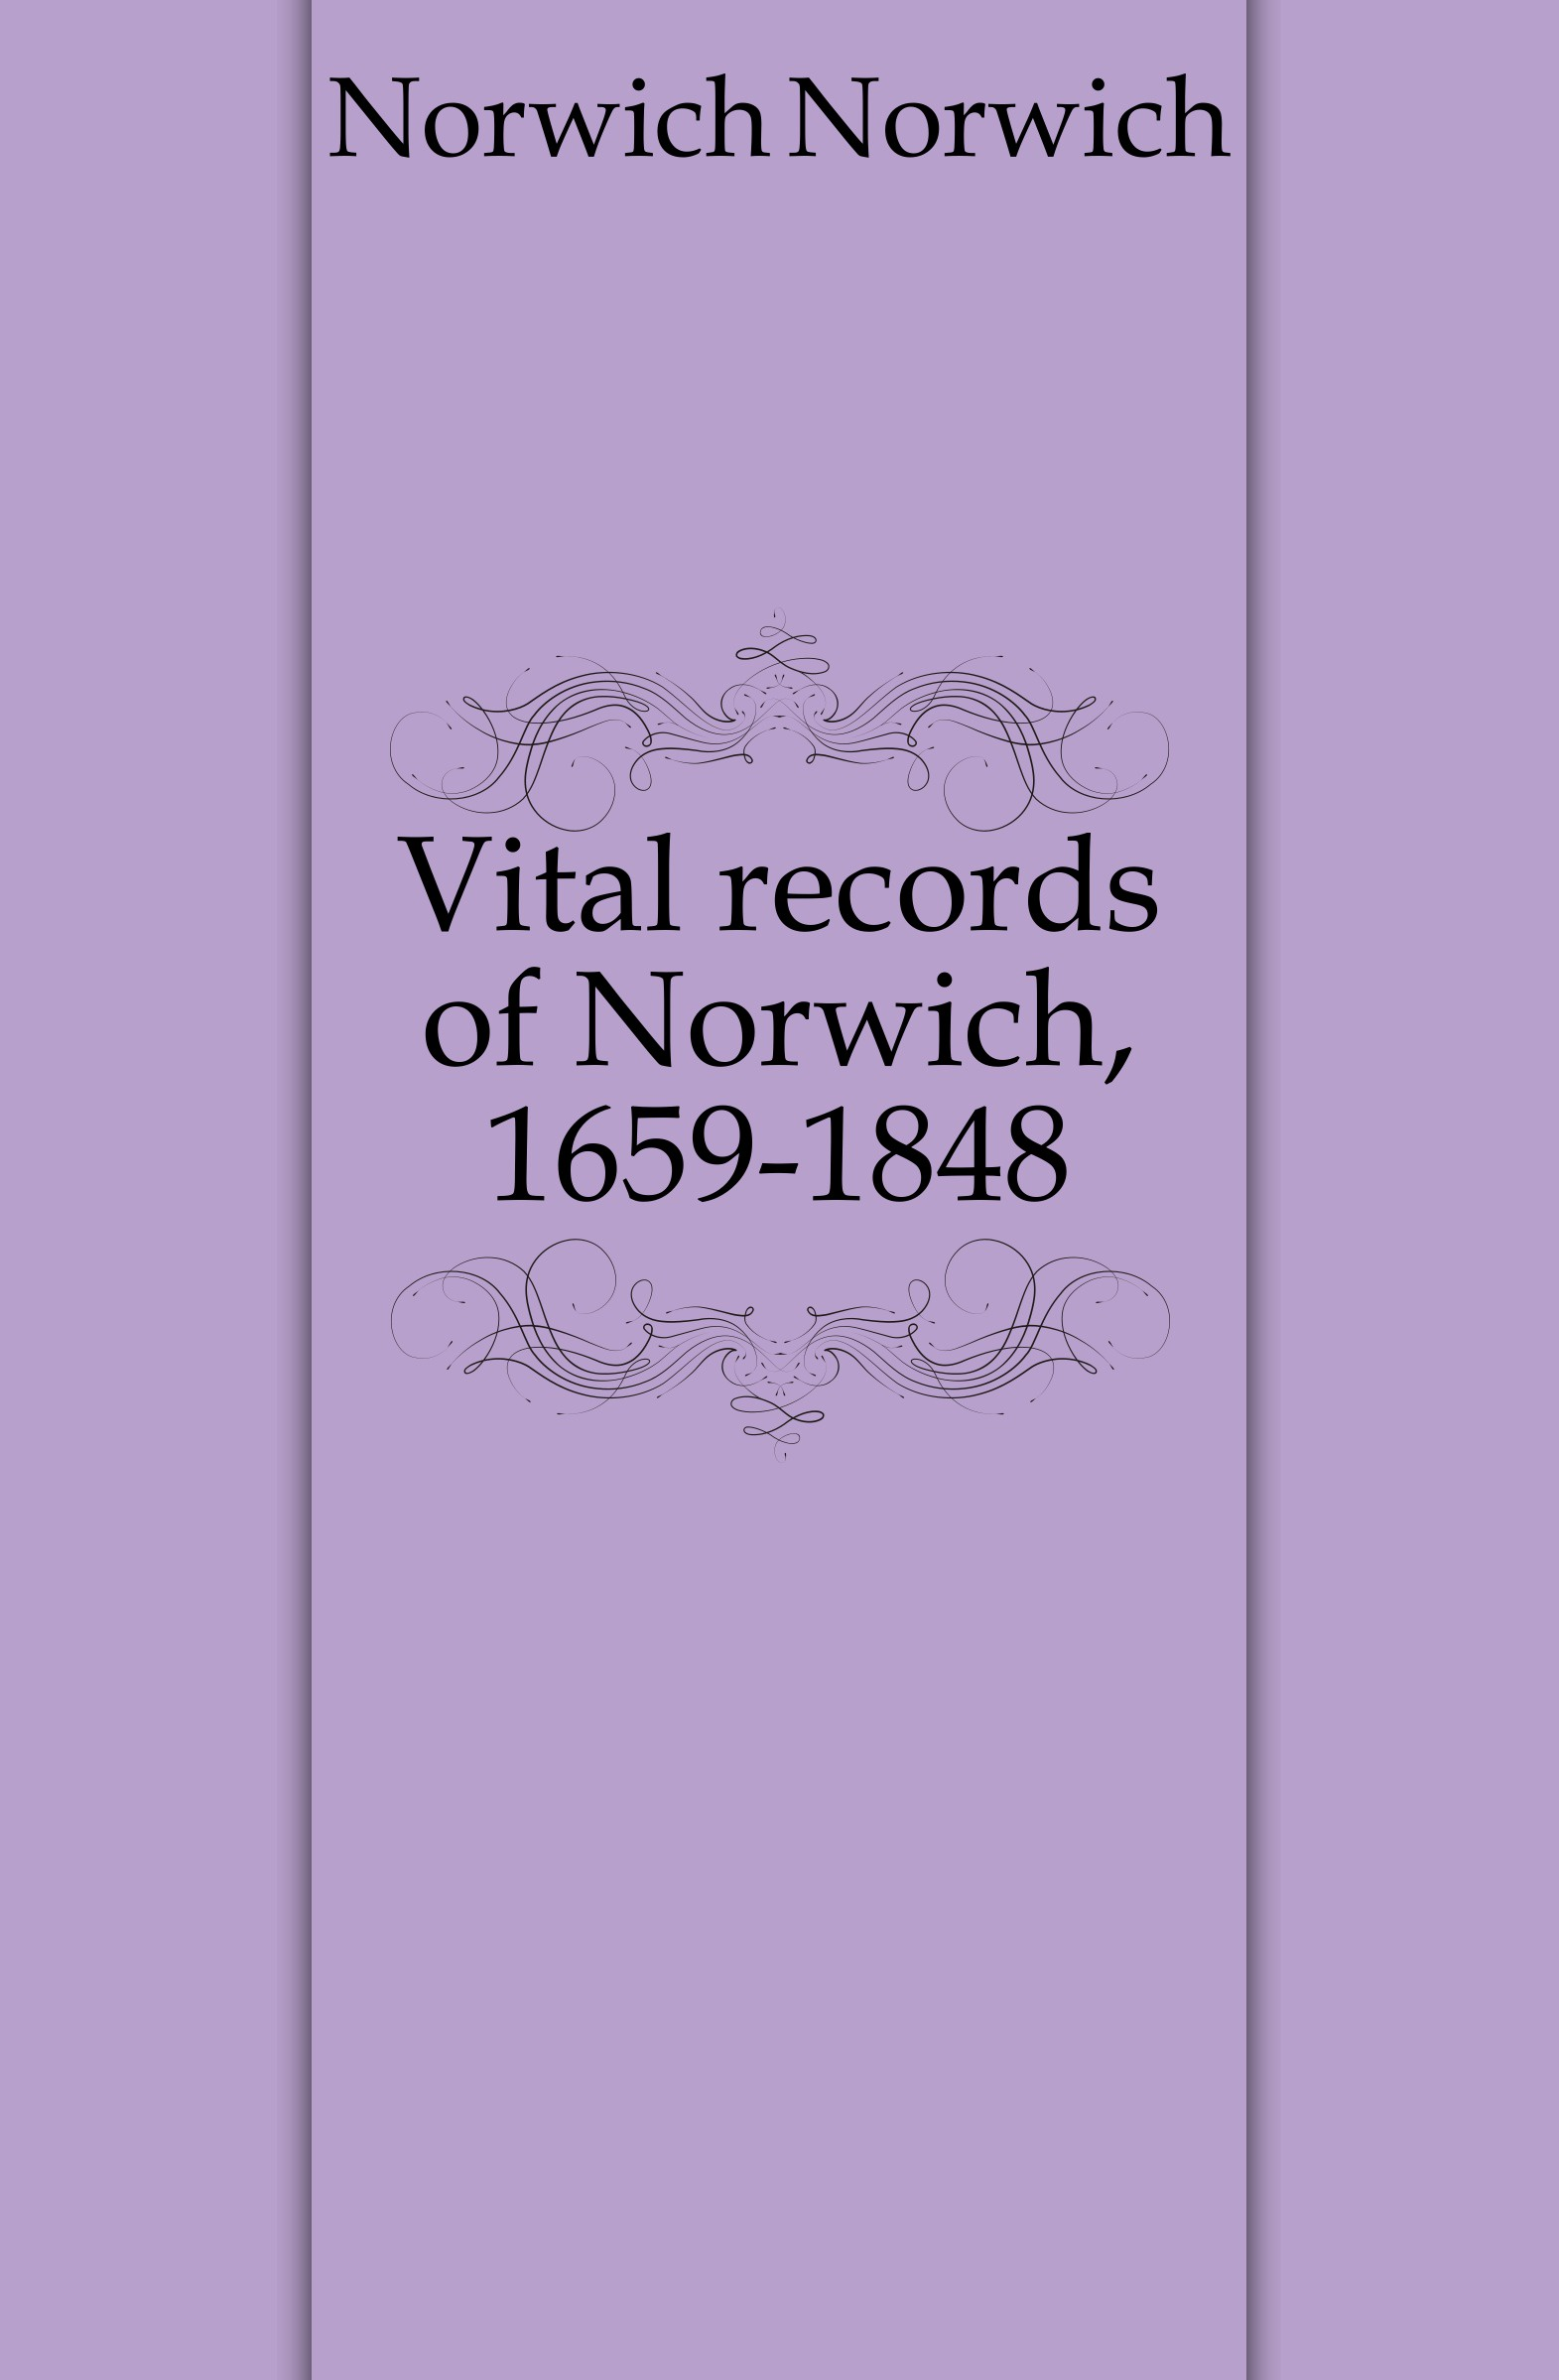 Norwich Norwich Vital records of Norwich, 1659-1848 jessie j norwich